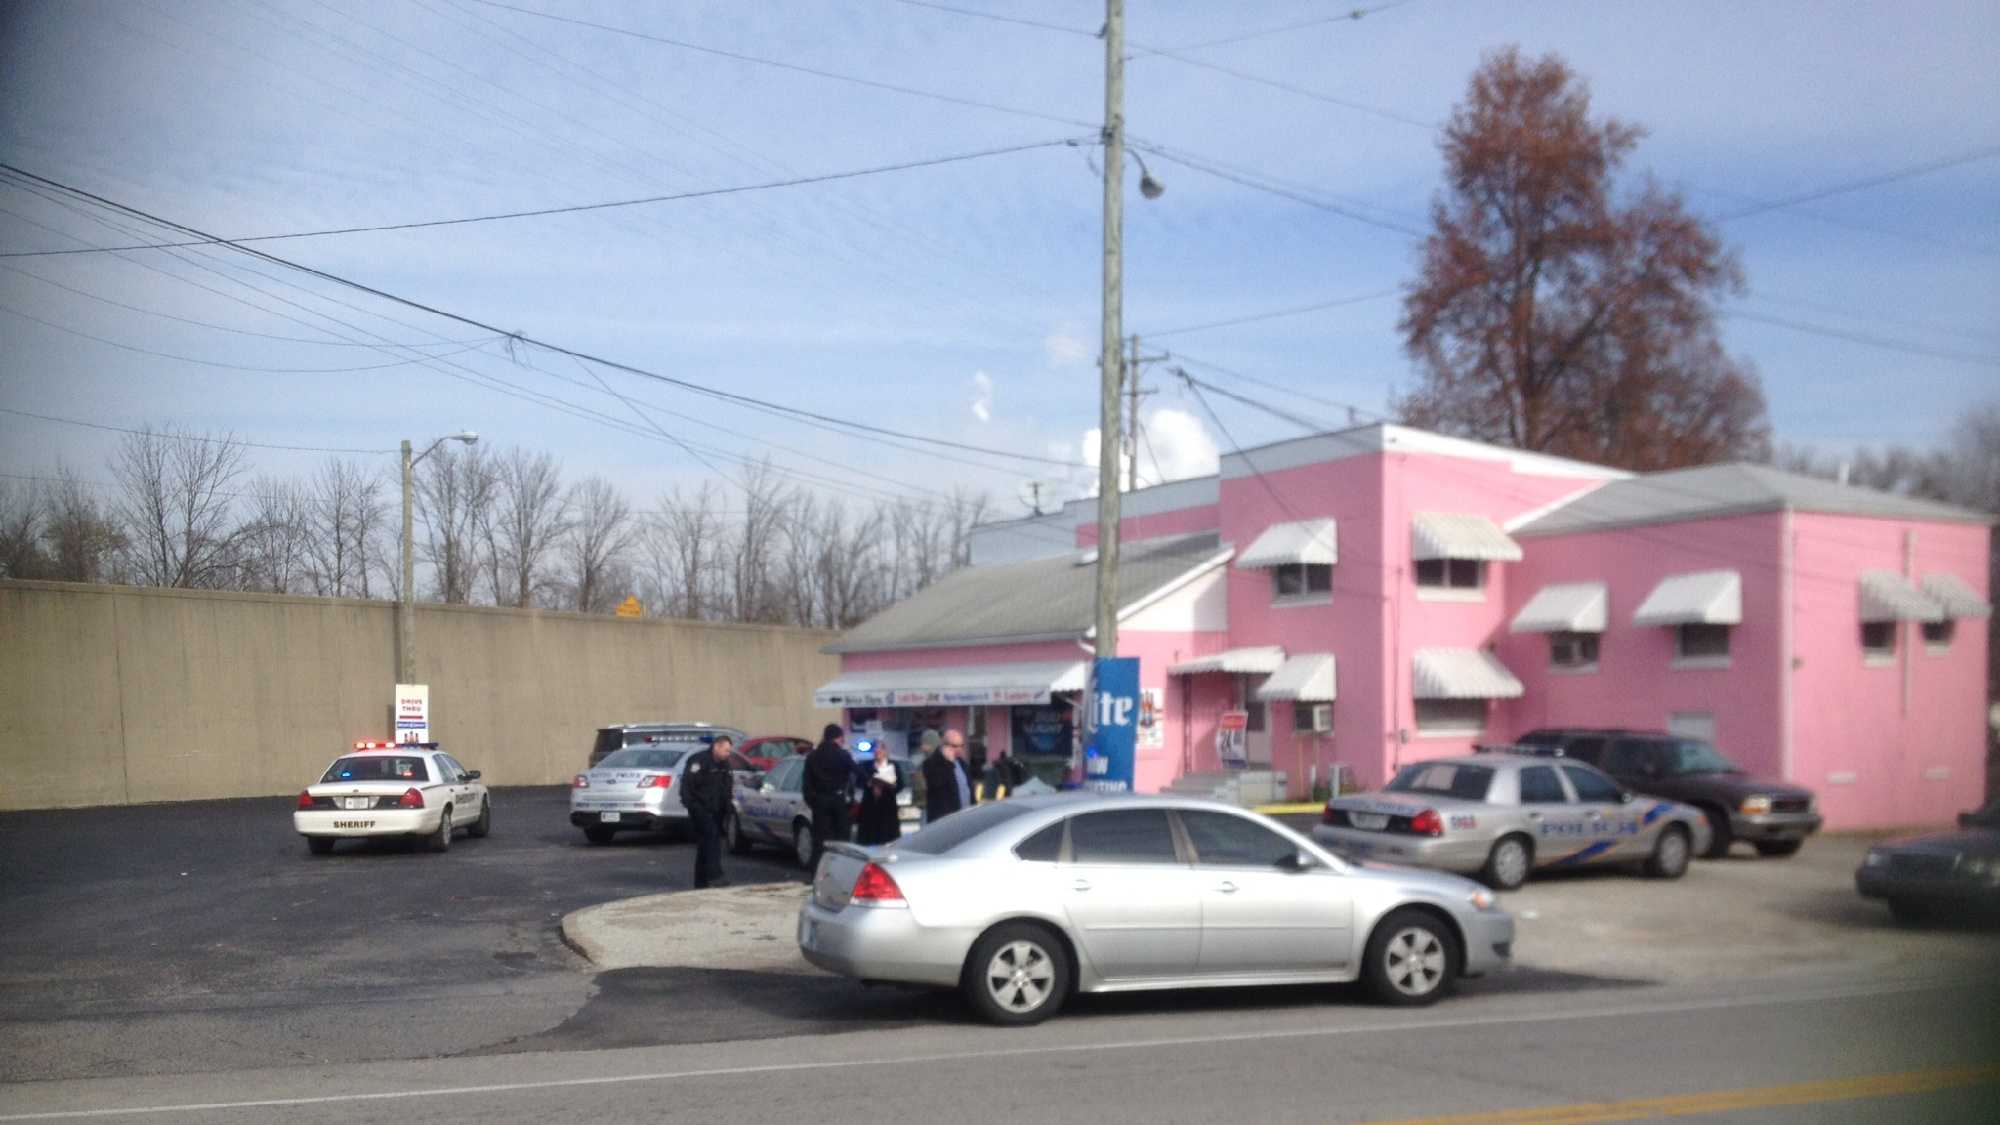 Police are responding to a fatal shooting at Jerry's Drive Inn Liquors in the 15000 Block of Dixie Hwy.